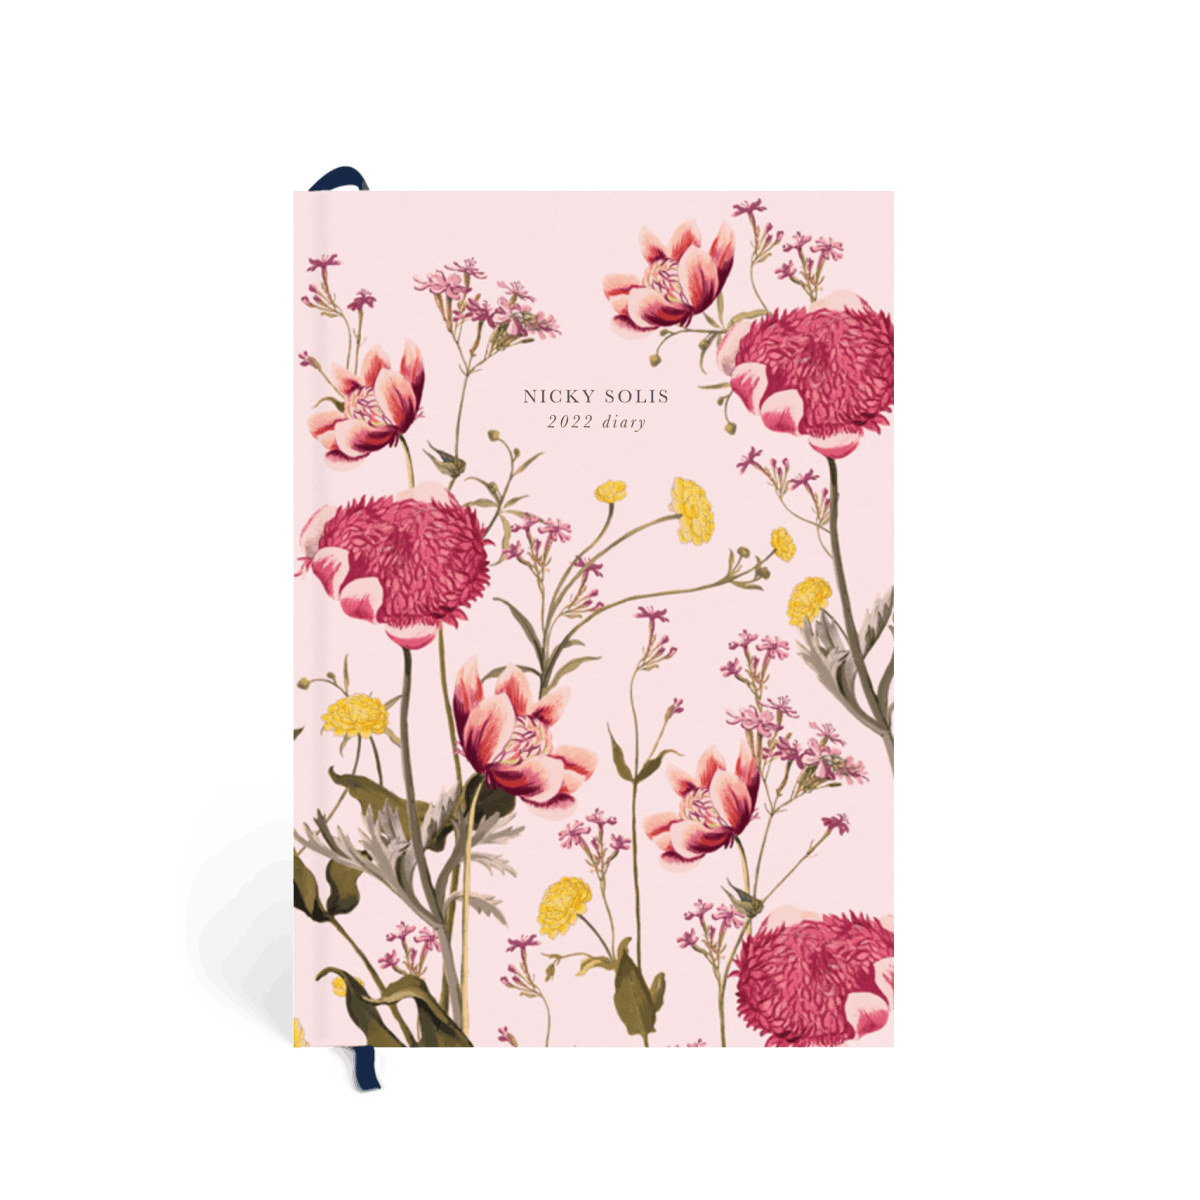 Https%3a%2f%2fwww.papier.com%2fproduct image%2f94708%2f36%2fpink botanical 23694 front 1572018731.png?ixlib=rb 1.1